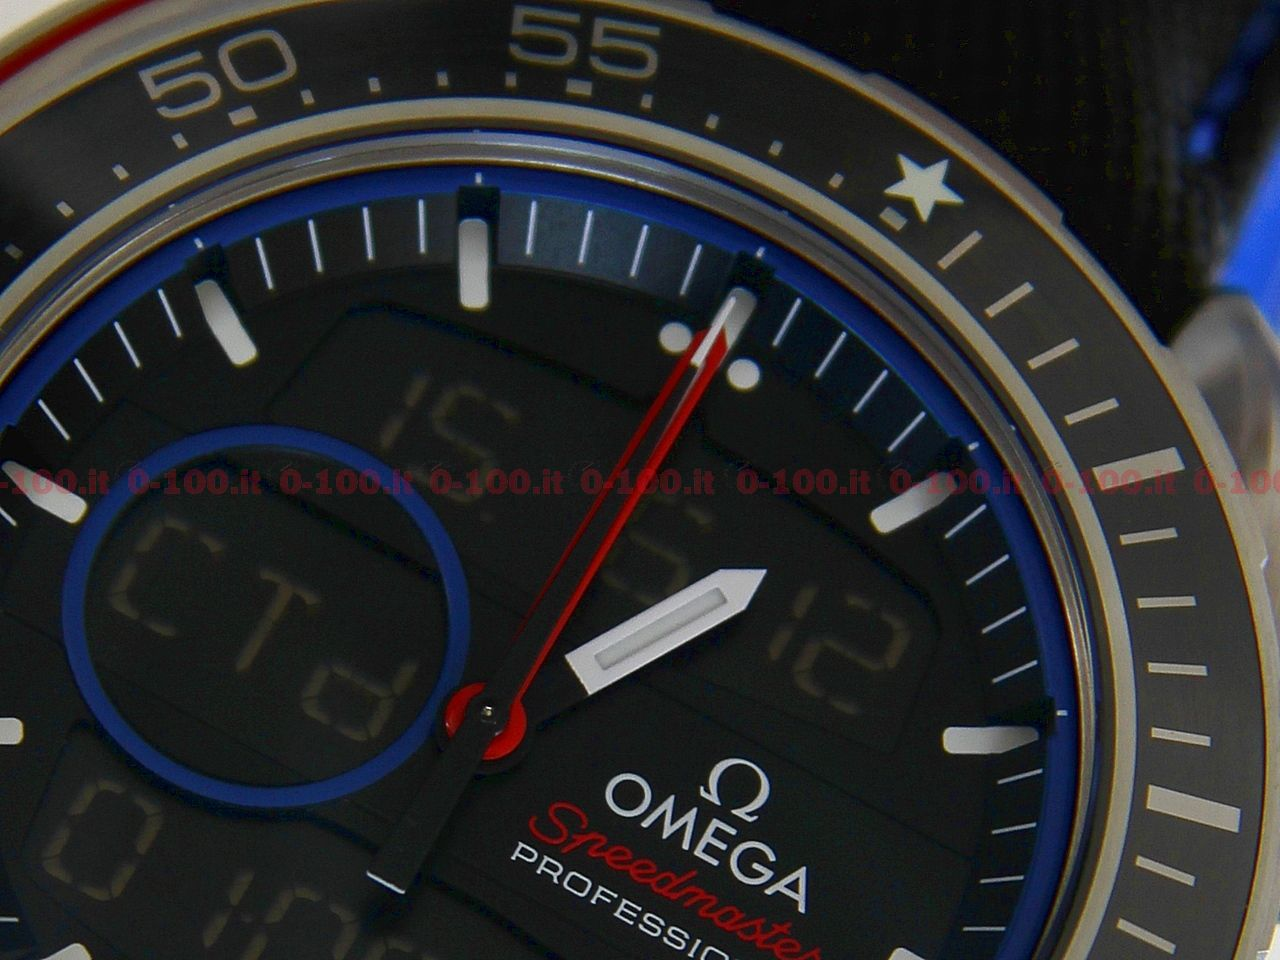 omega-speedmaster-x33-regatta-team-tilt-gc32_0-100-36